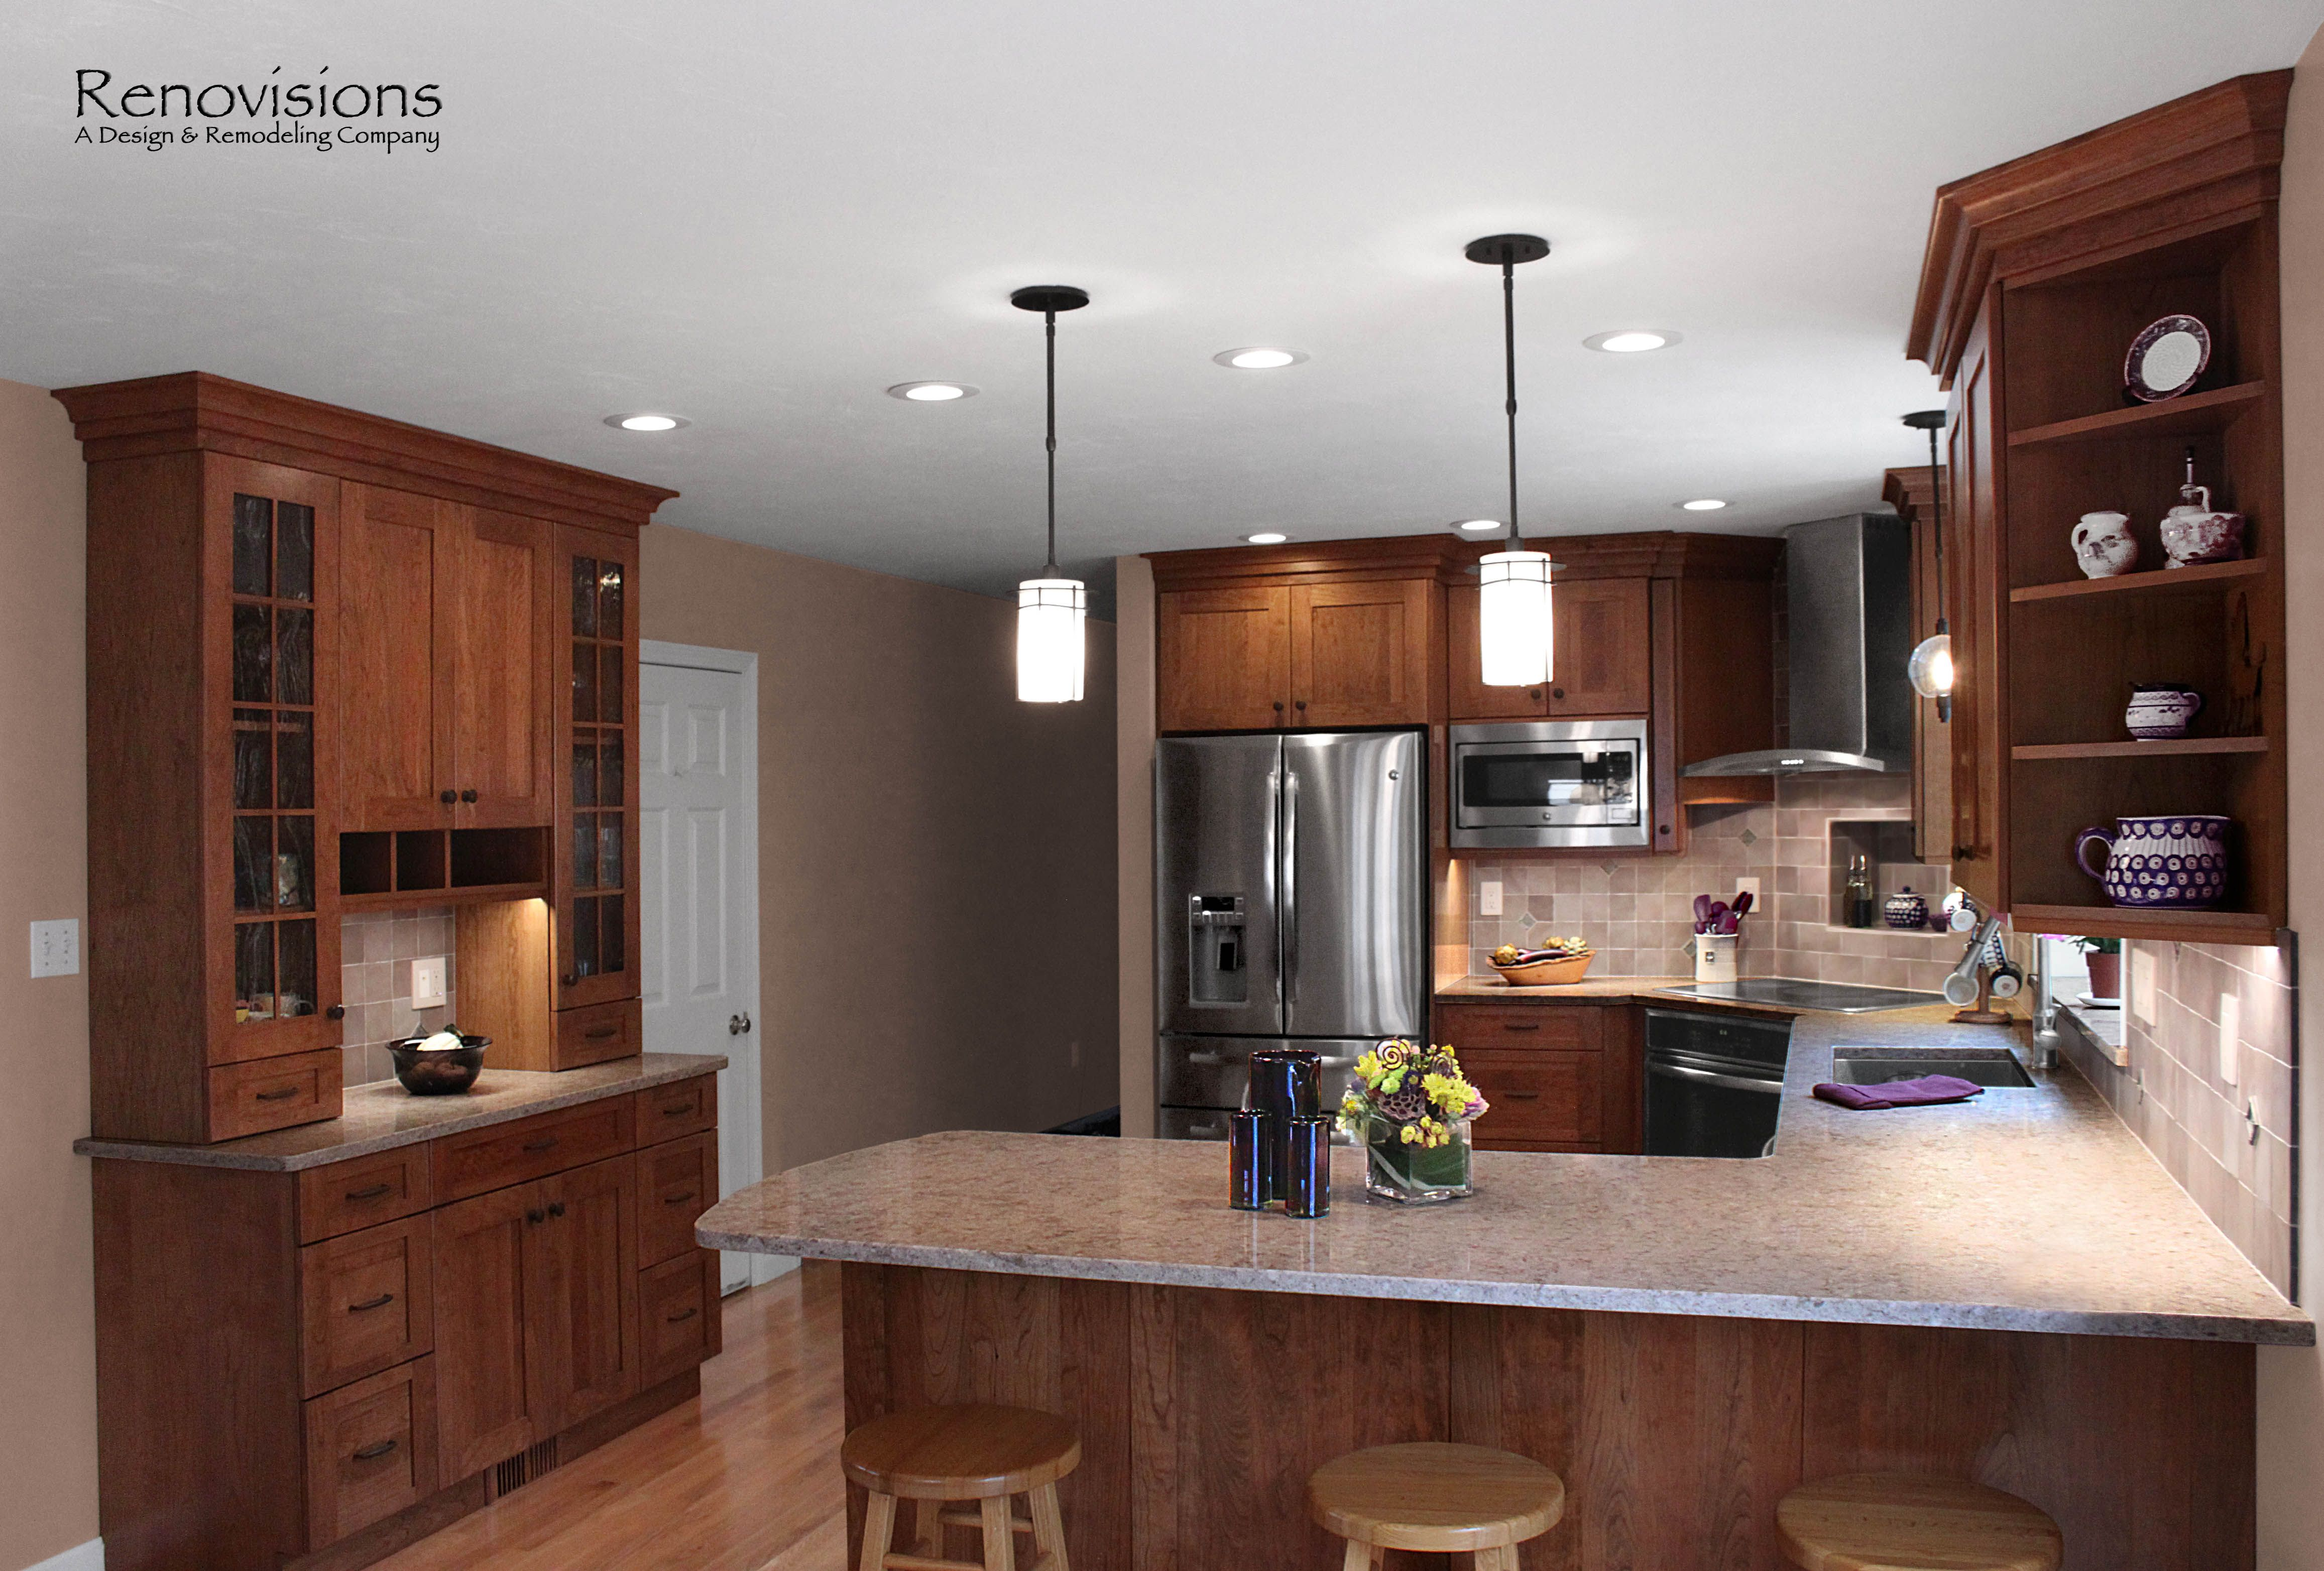 shaker kitchen lighting kitchen remodel by renovisions induction cooktop 2174